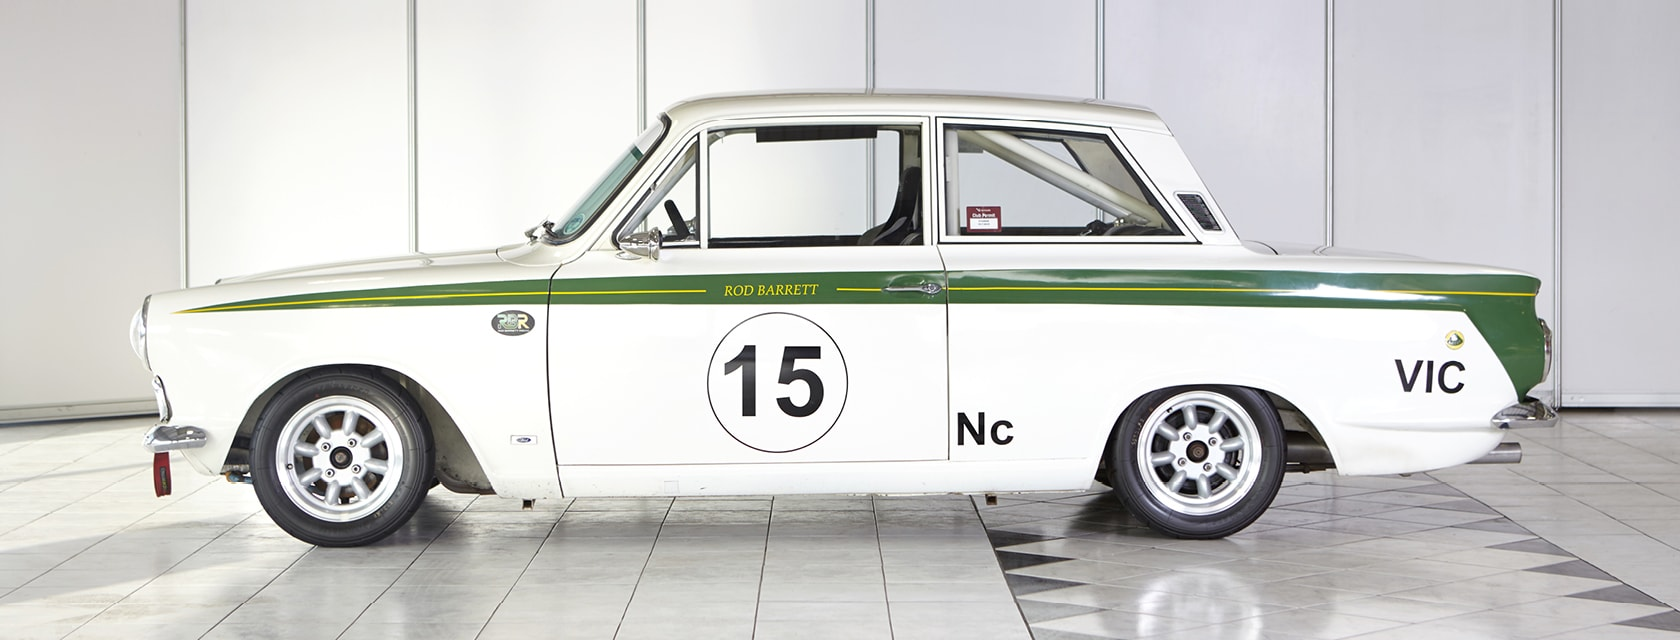 Lotus Mk 1 Cortina 1965 classic rally car for sale